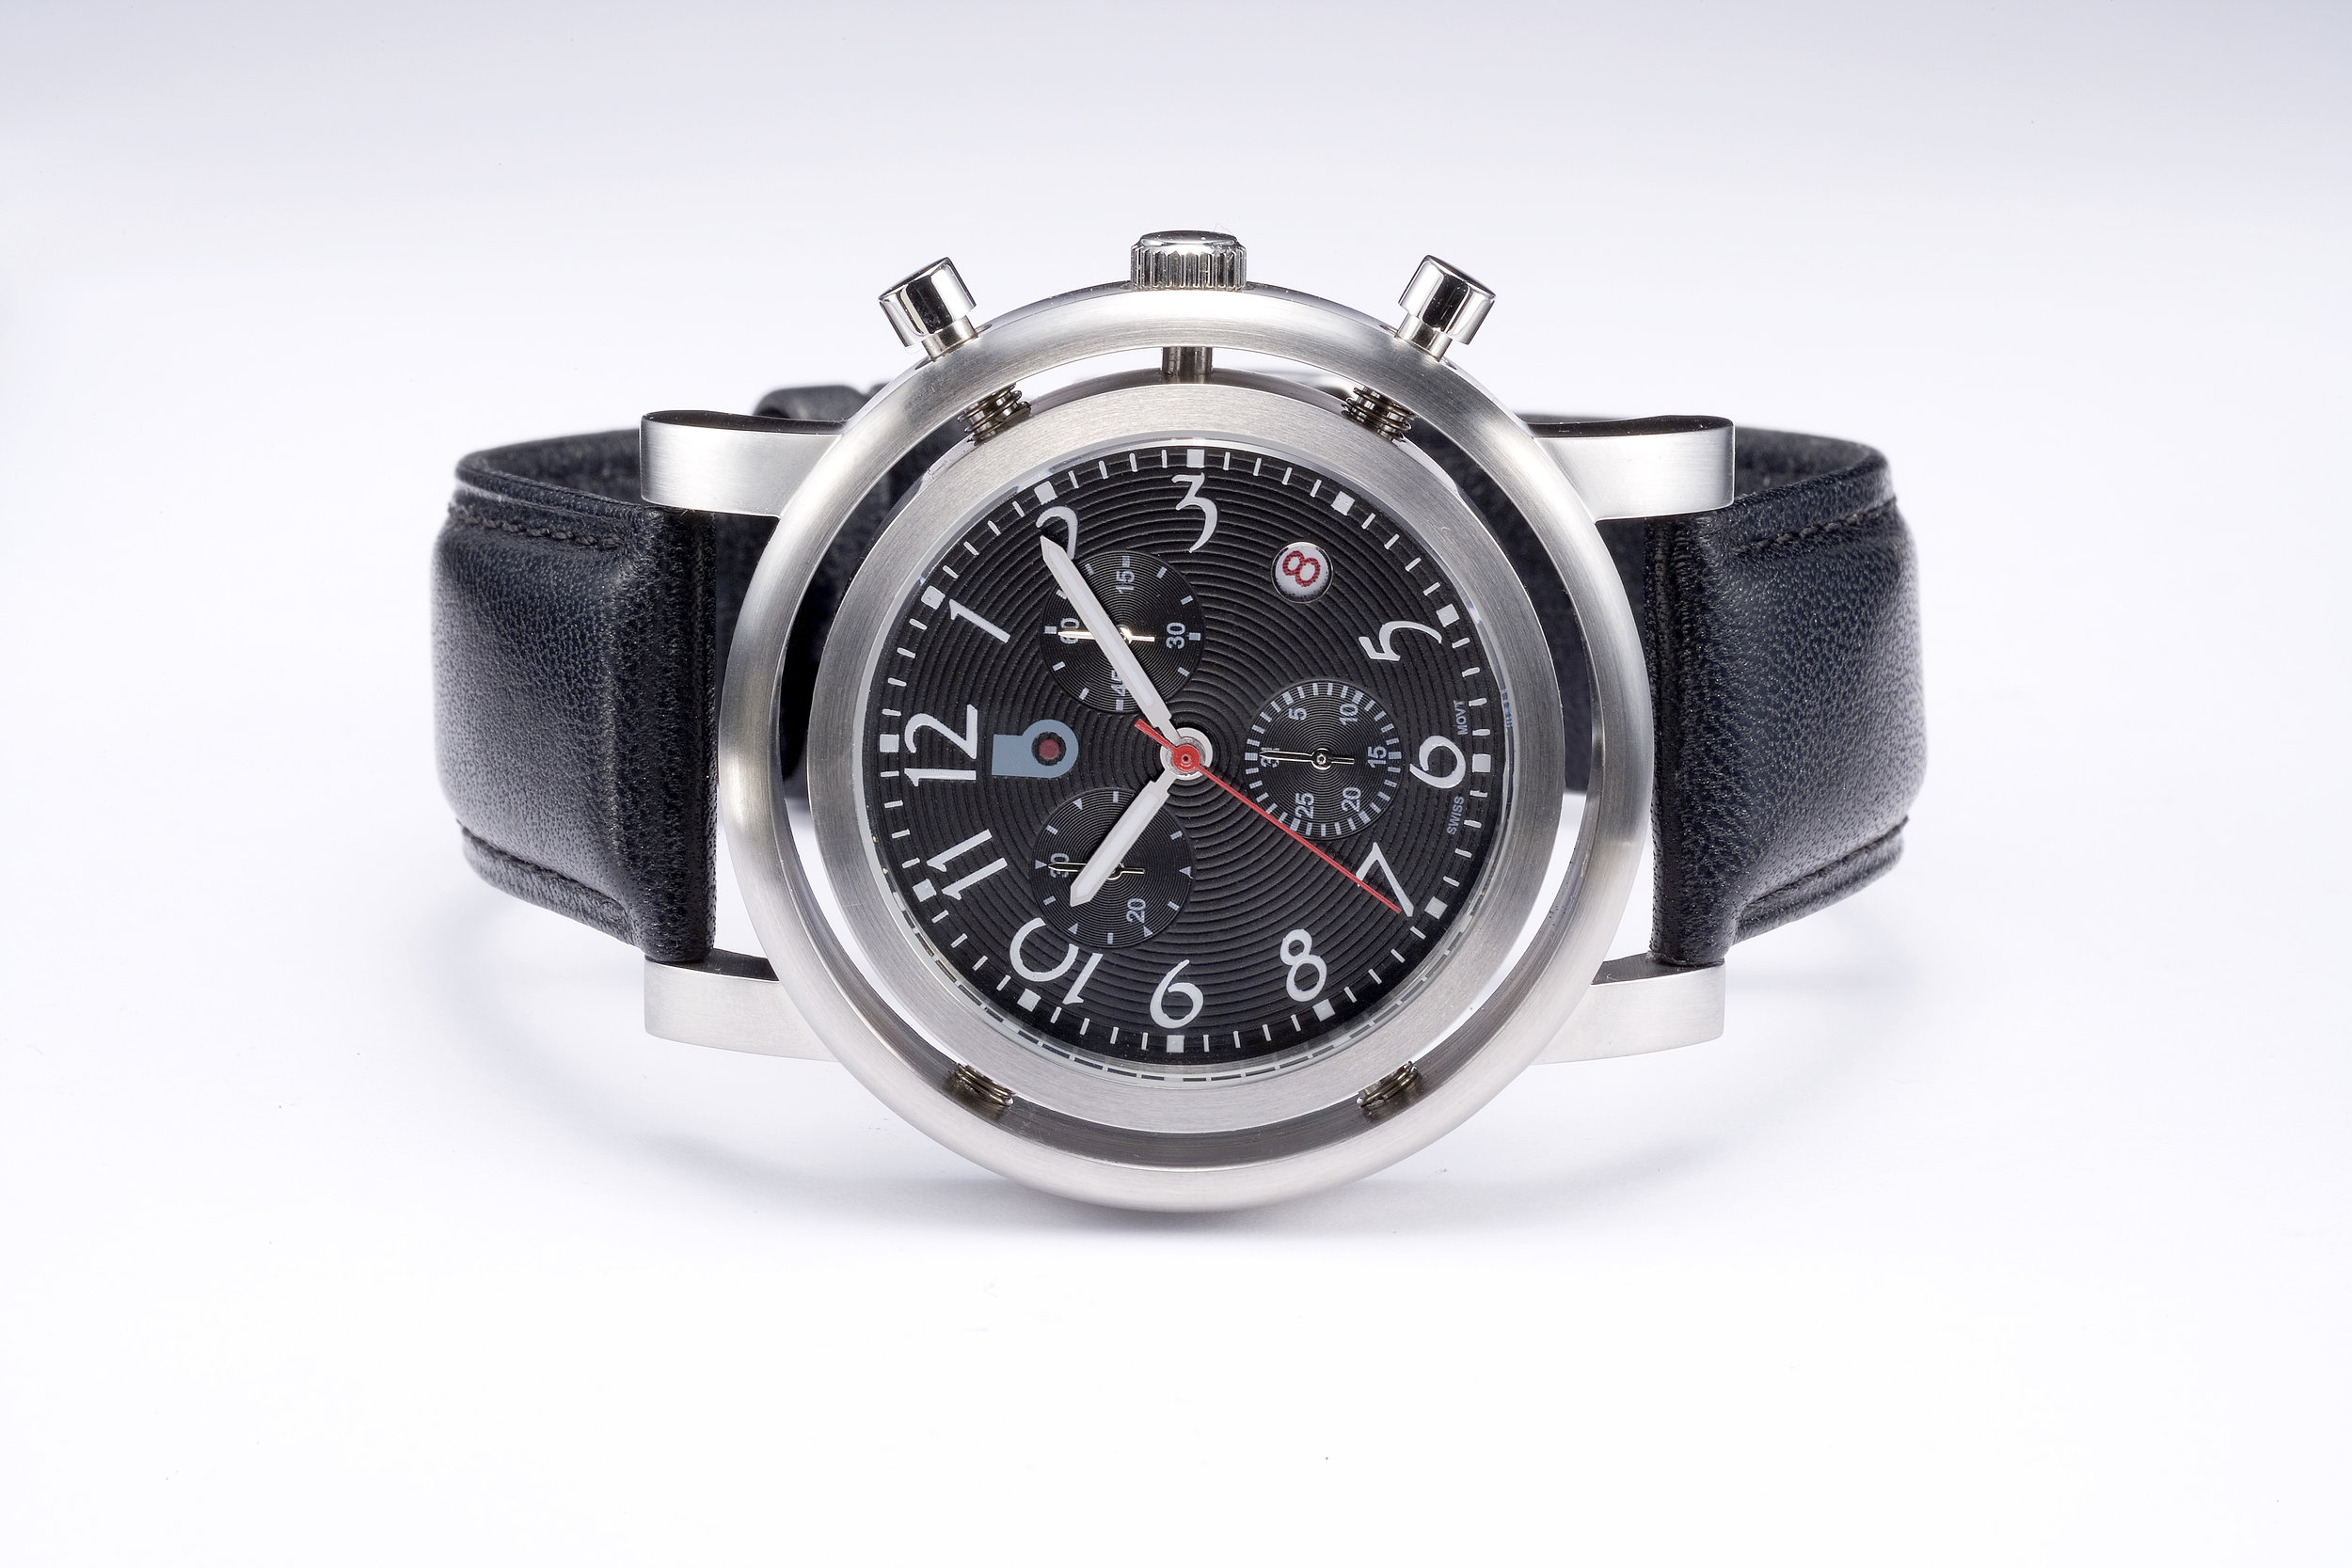 0185 GEOSPORTSTER CHRONO LEATHER FRONT black face.jpg